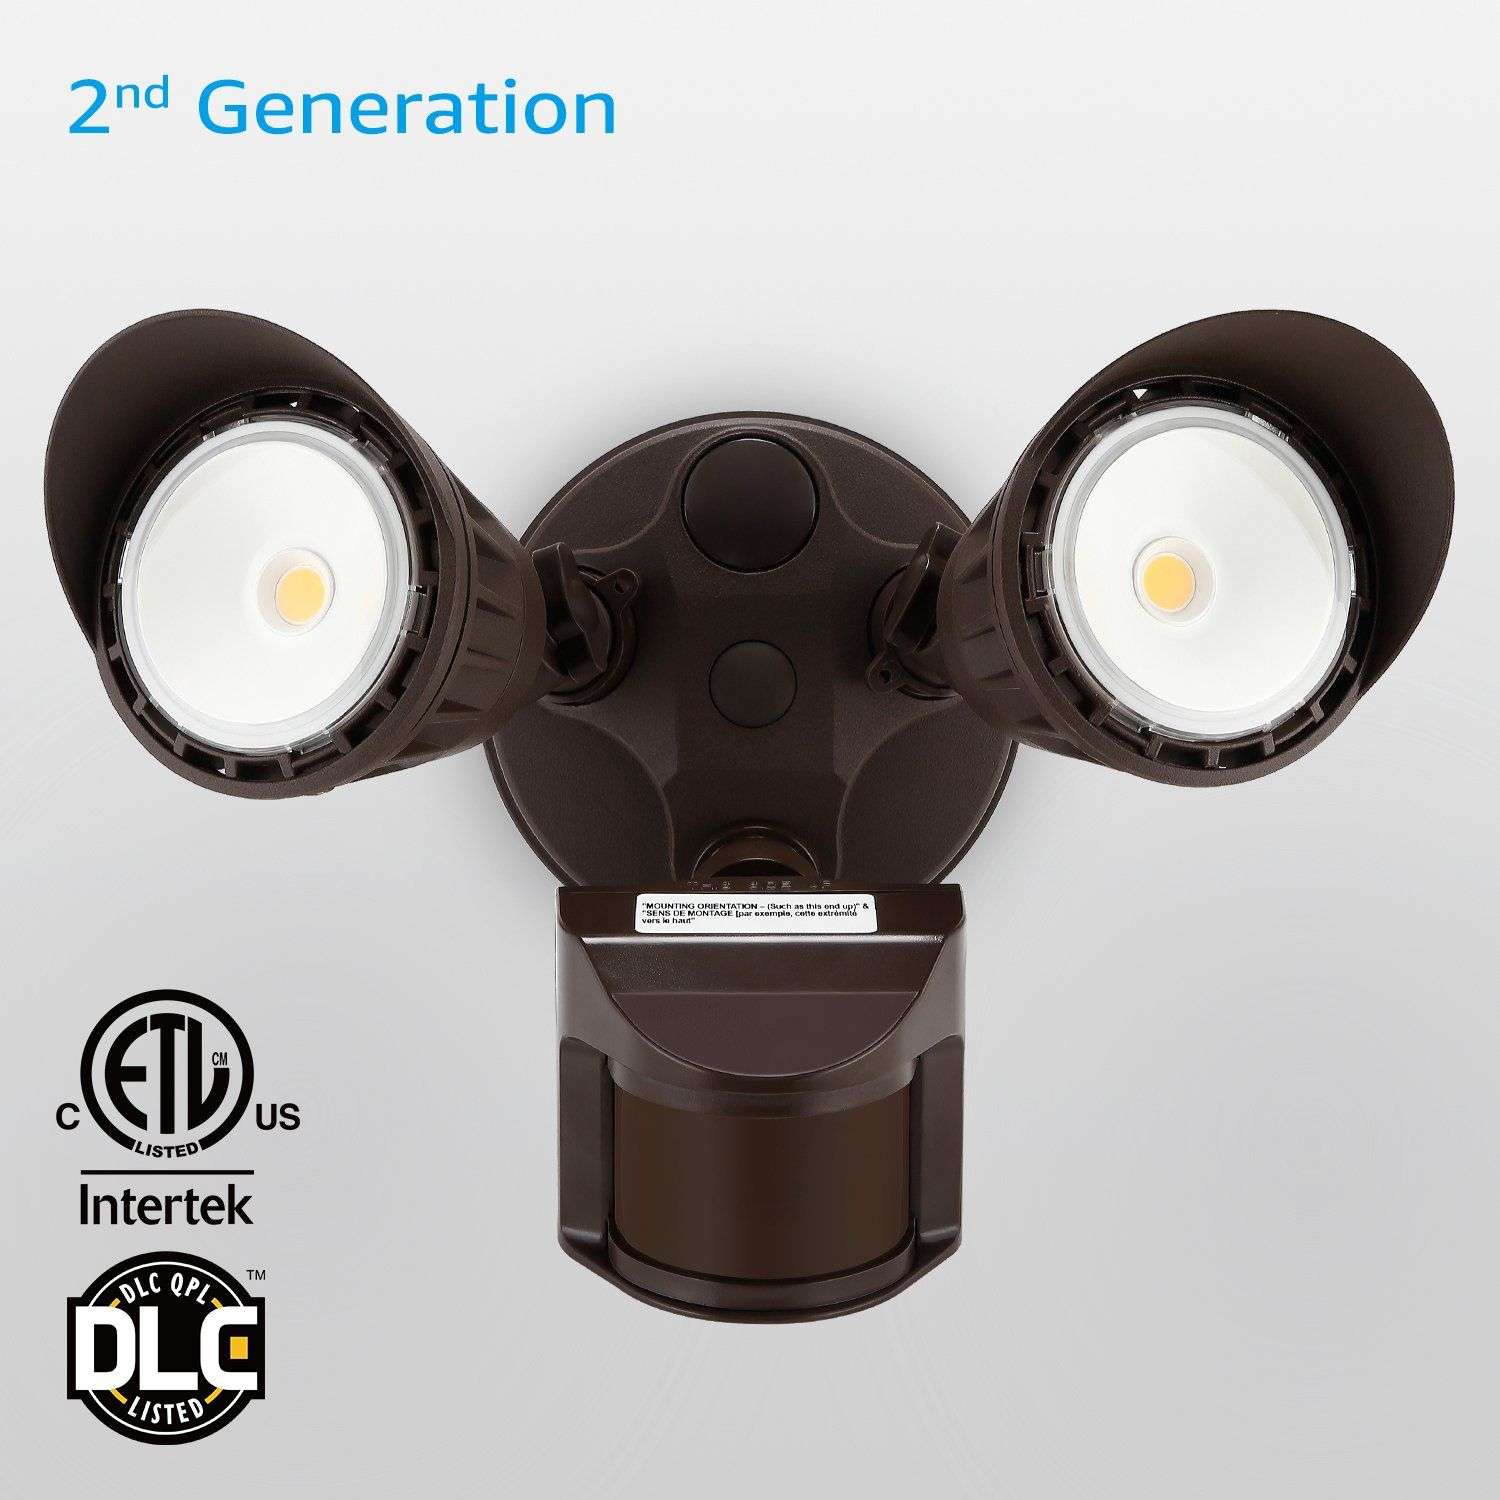 Dual head motion activated led outdoor security light waterproof dual head motion activated led outdoor security light waterproof photocell included aloadofball Images